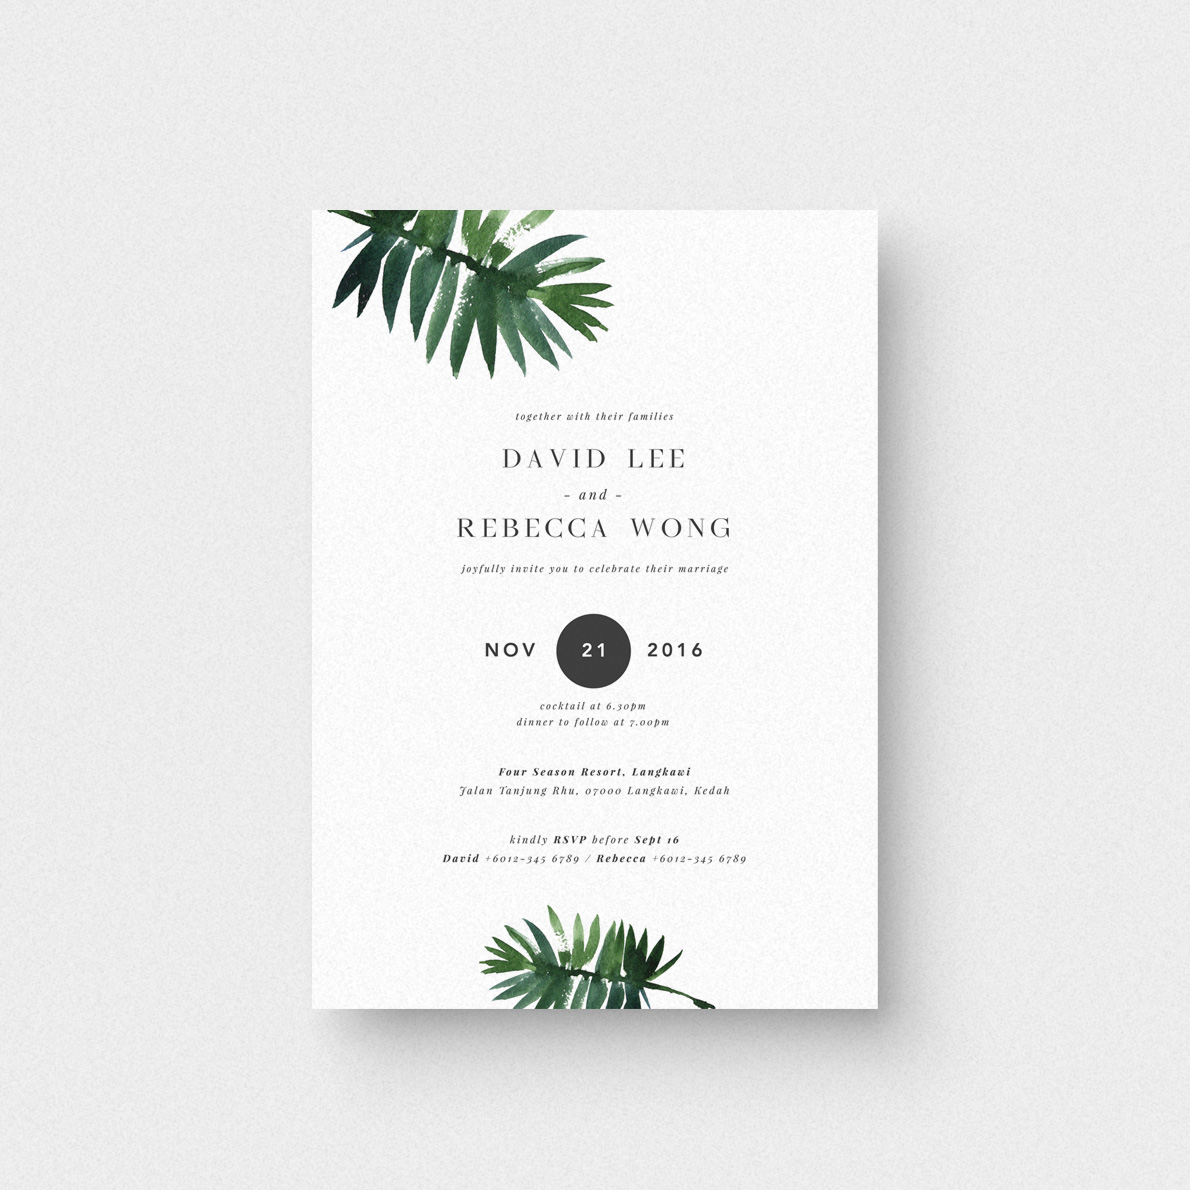 Blissful Leaves Invitation Card - The Paperpapers - Wedding ...